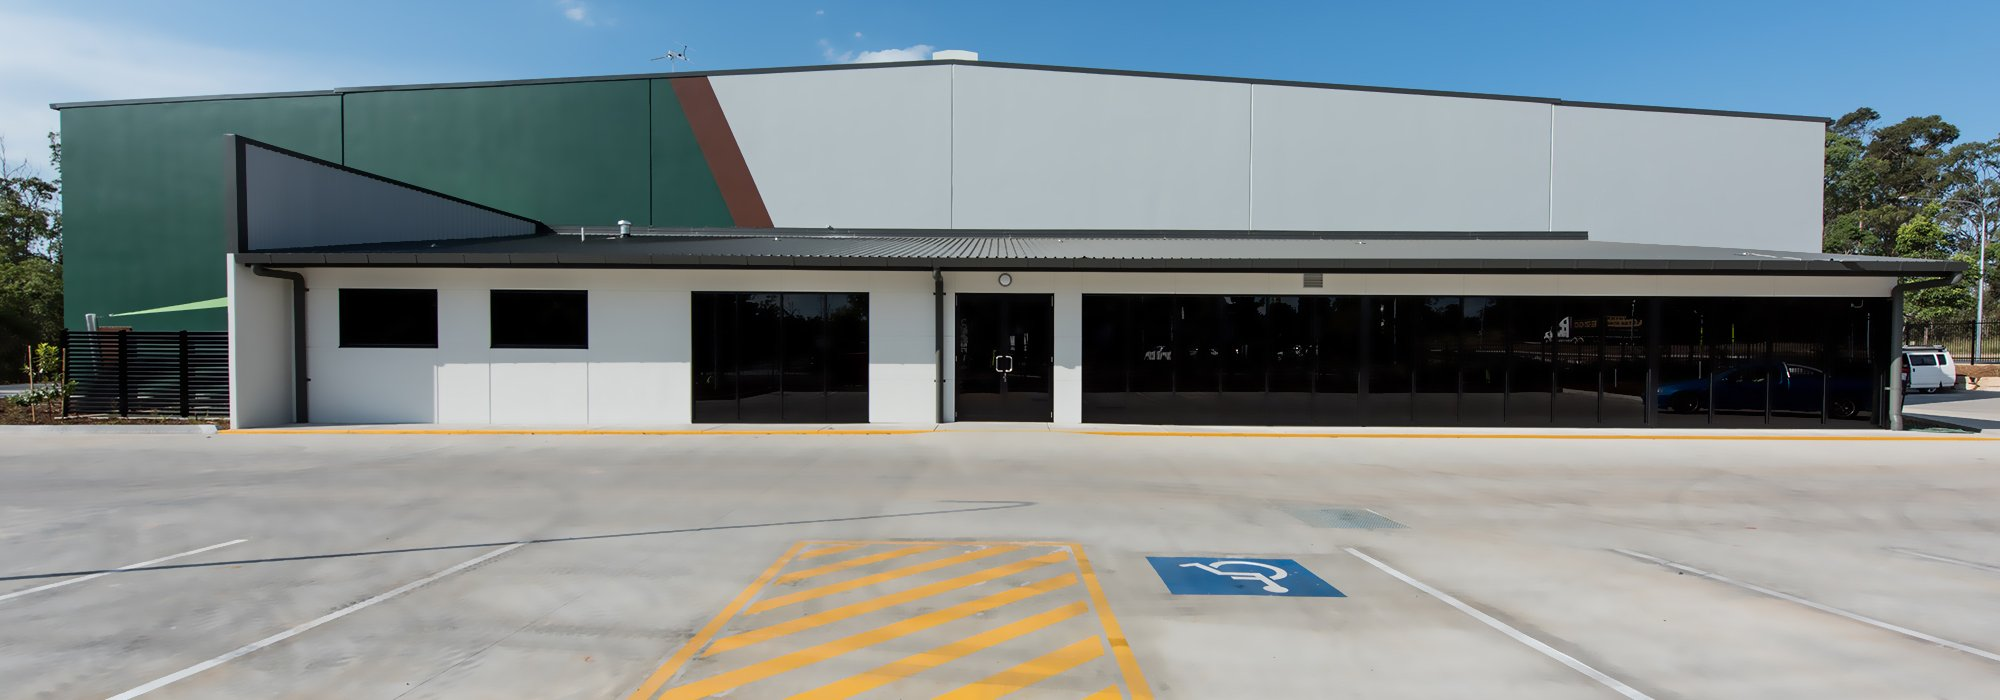 View of the car parking area for handicap customer